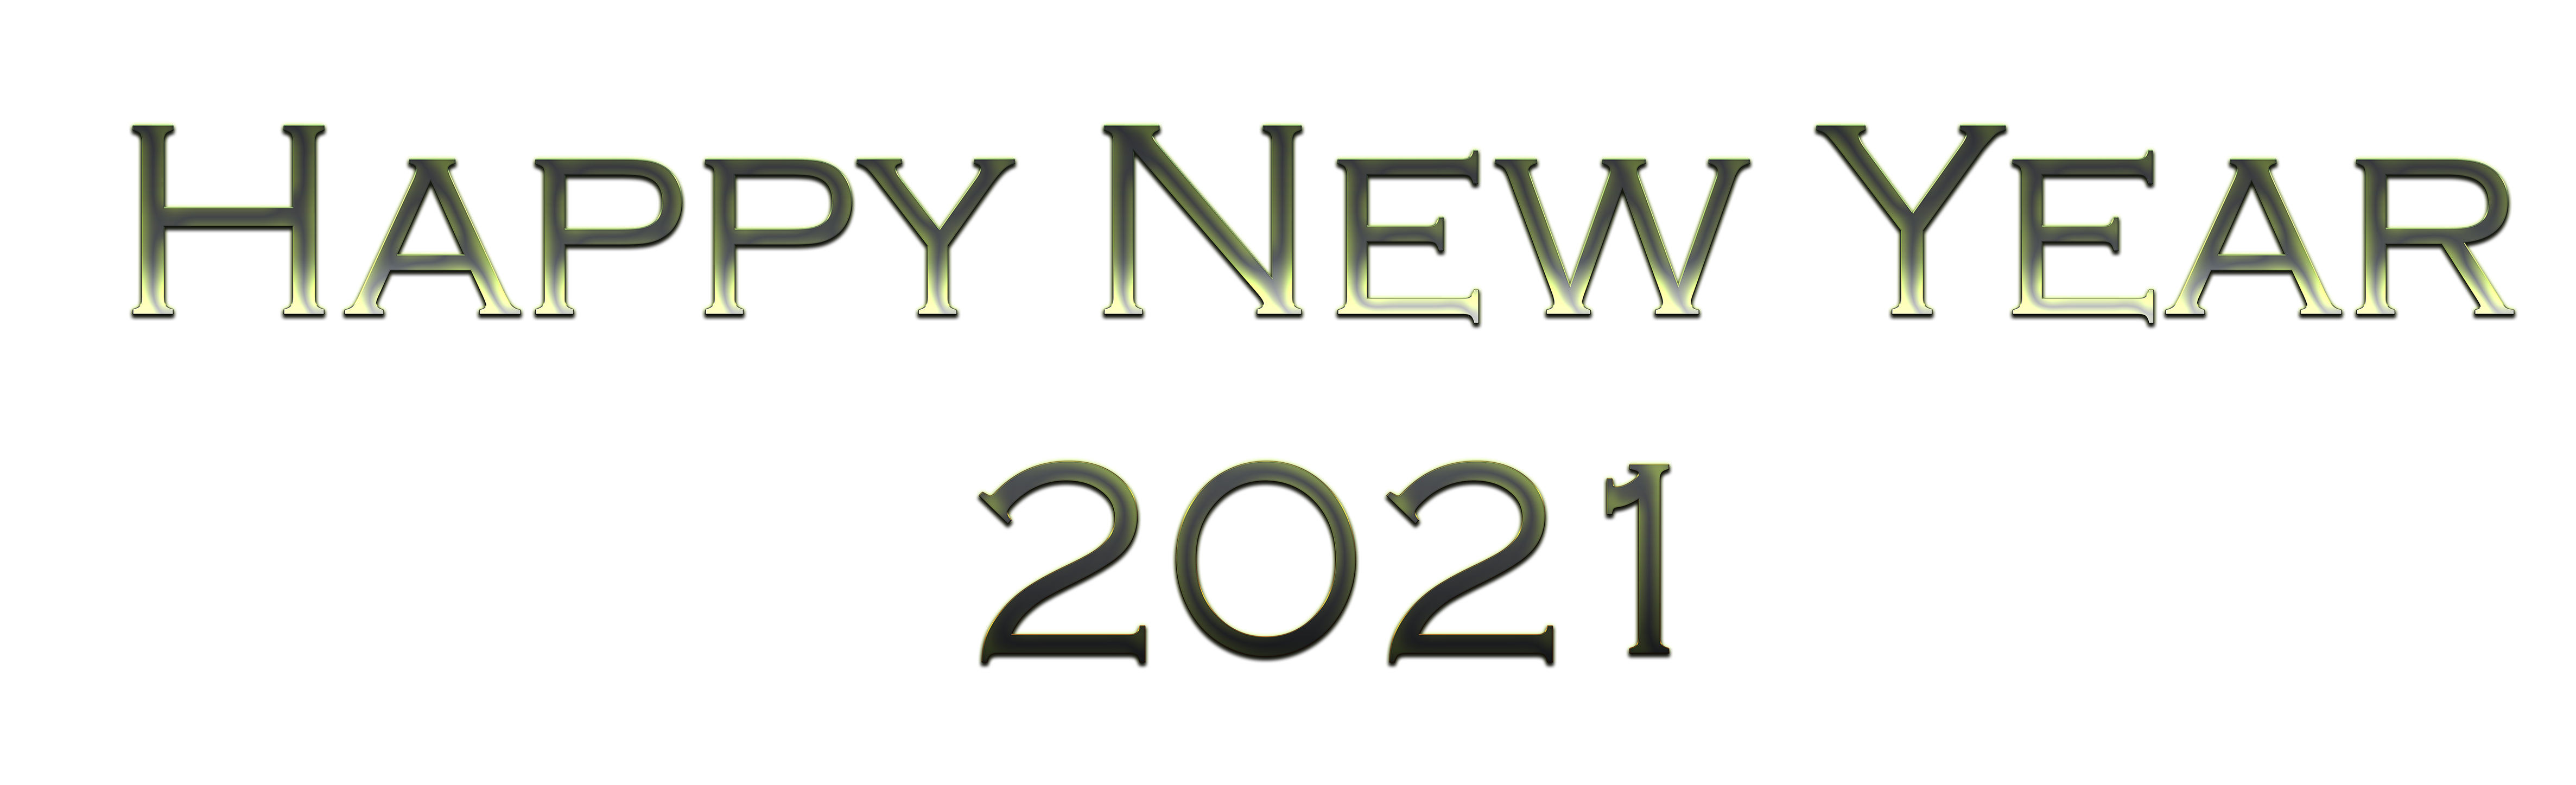 happy new year 2021 transparent download #41570